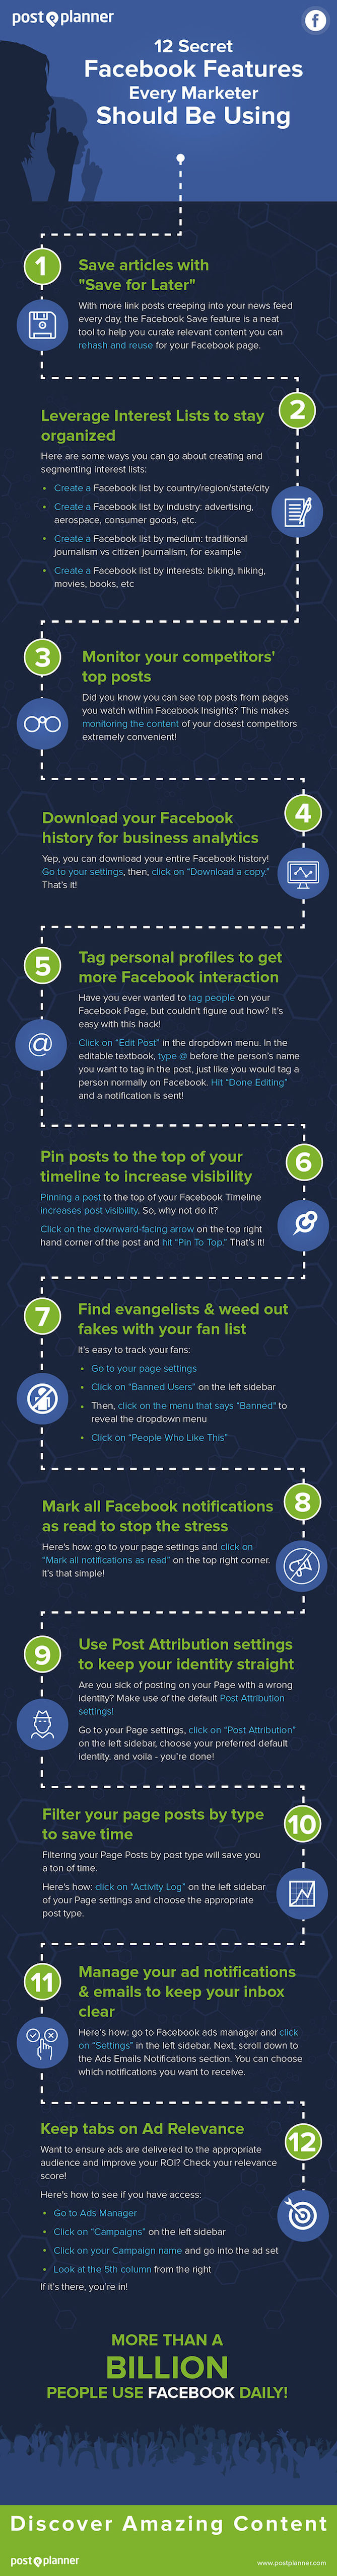 facebook-marketing-secrets.jpeg